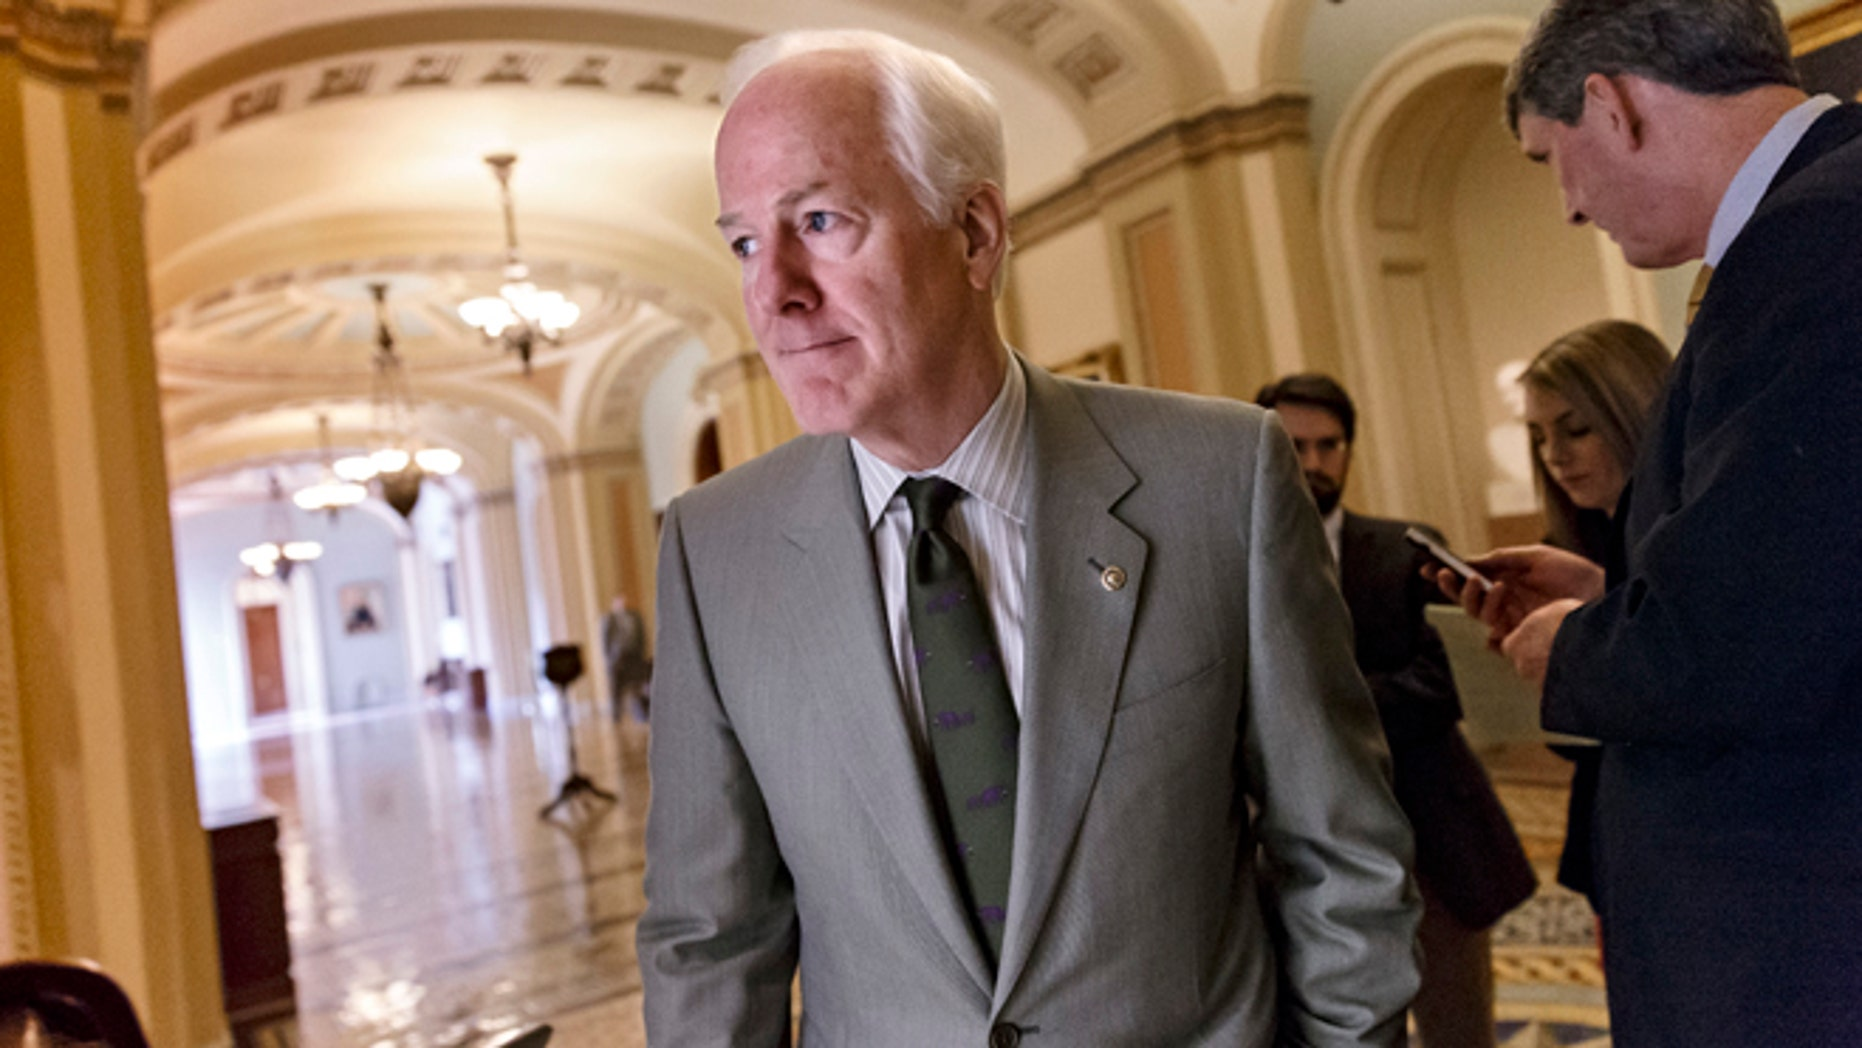 Dec. 18, 2013: Senate Minority Whip John Cornyn, R-Texas, and other Republicans walk to a closed-door GOP meeting before the Senate moves to pass a modest, bipartisan budget bill, at the Capitol in Washington.